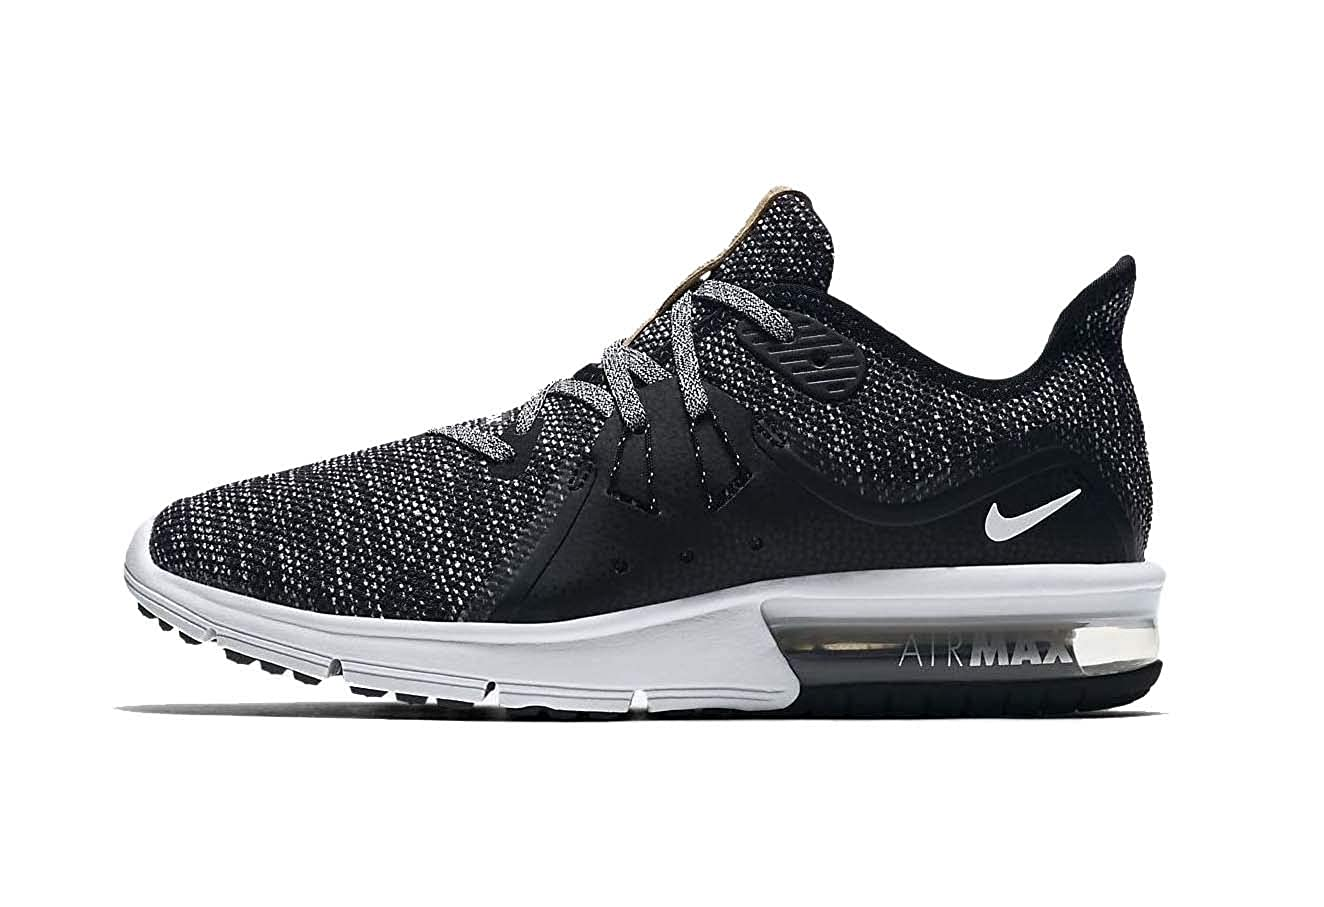 low priced 3d5cb 37711 Amazon.com   Nike Womens Air Max Sequent 3 Fabric Low Top Lace Up Running  Sneaker   Road Running